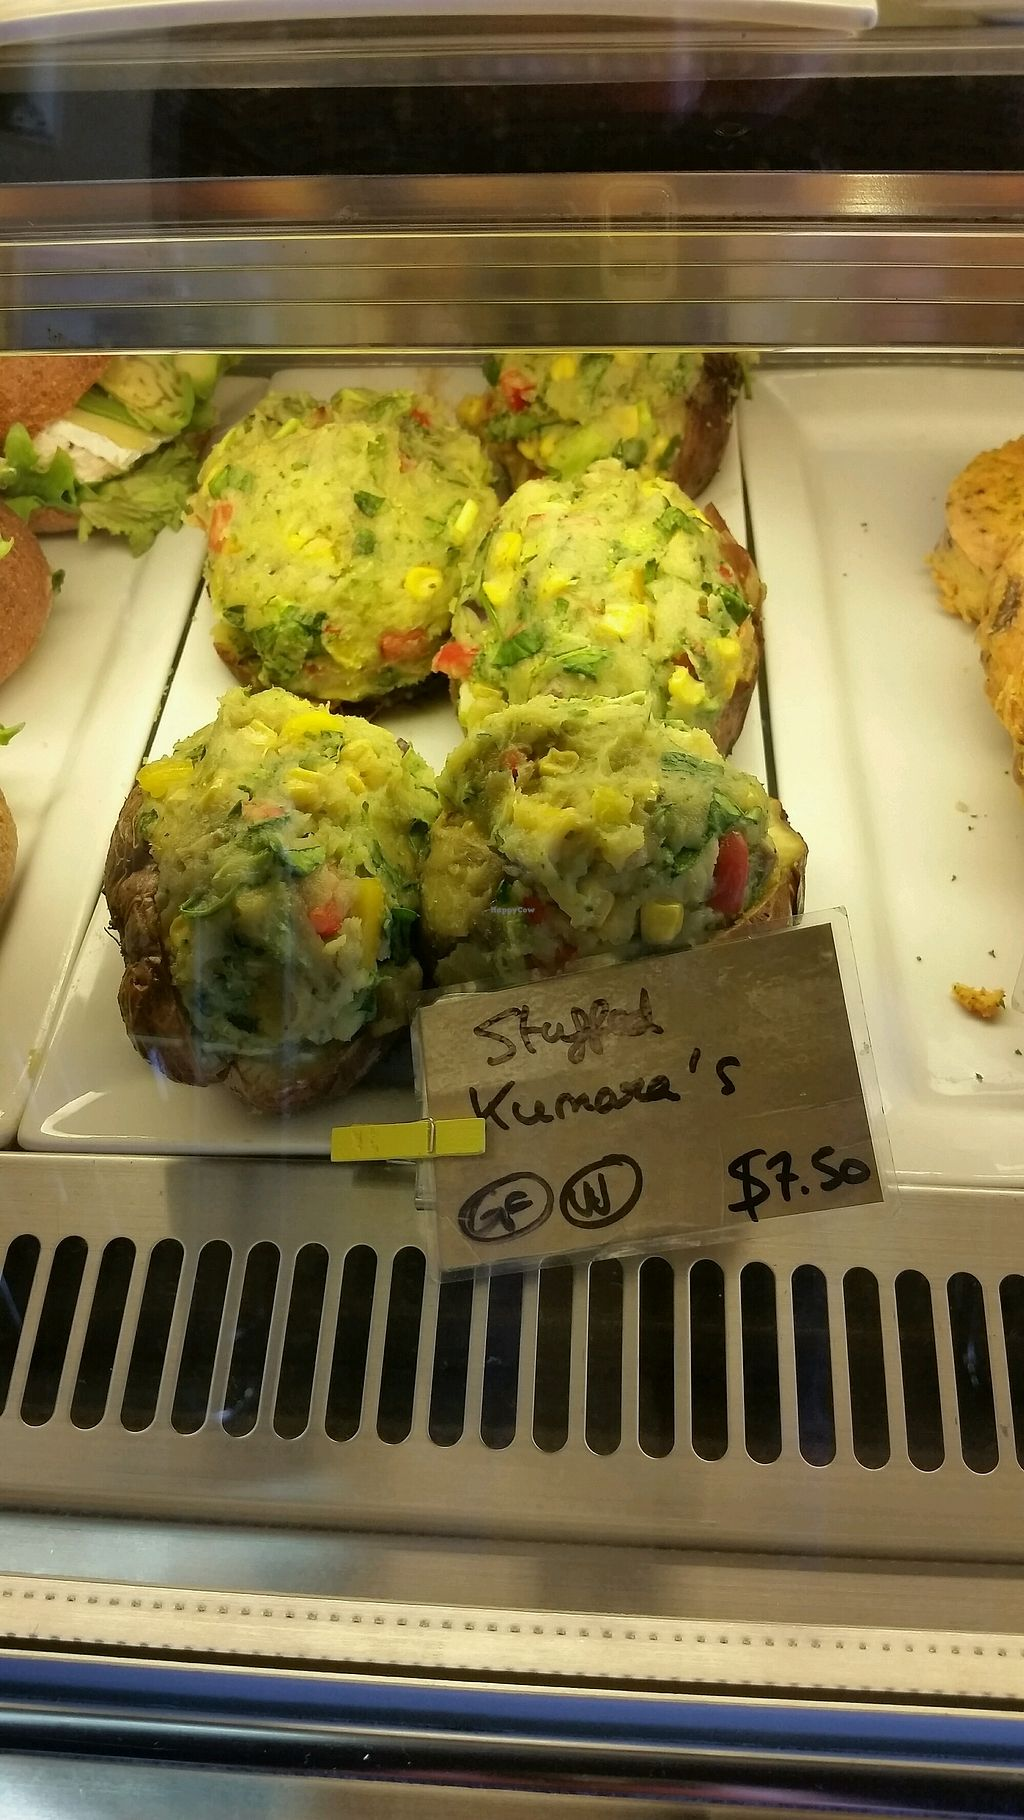 """Photo of Ritual Coffee Company  by <a href=""""/members/profile/Nikki1801"""">Nikki1801</a> <br/>stuffed kumara <br/> September 10, 2017  - <a href='/contact/abuse/image/68847/302834'>Report</a>"""